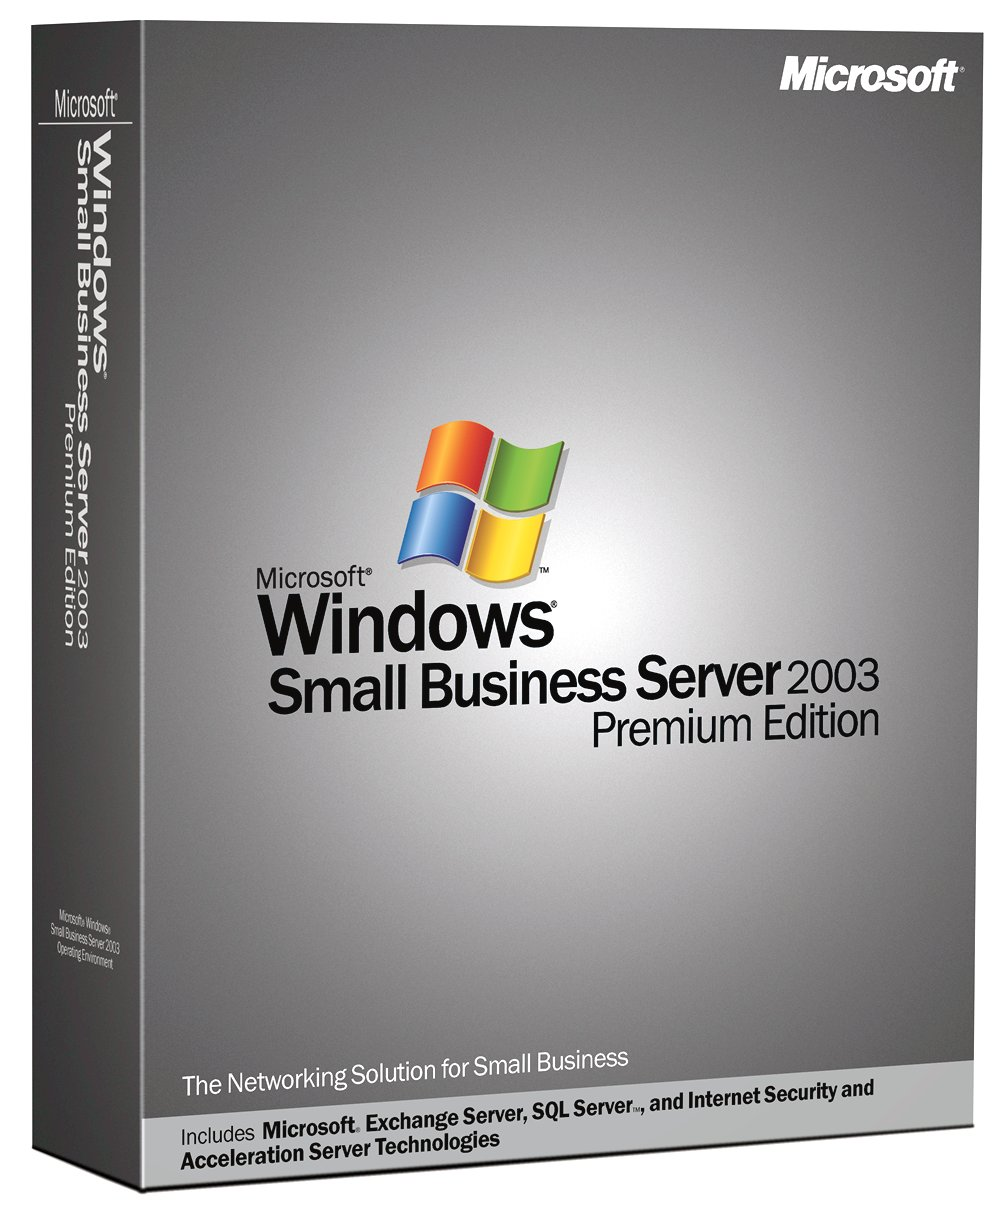 Windows Small Business Server 2003 Premium Edition